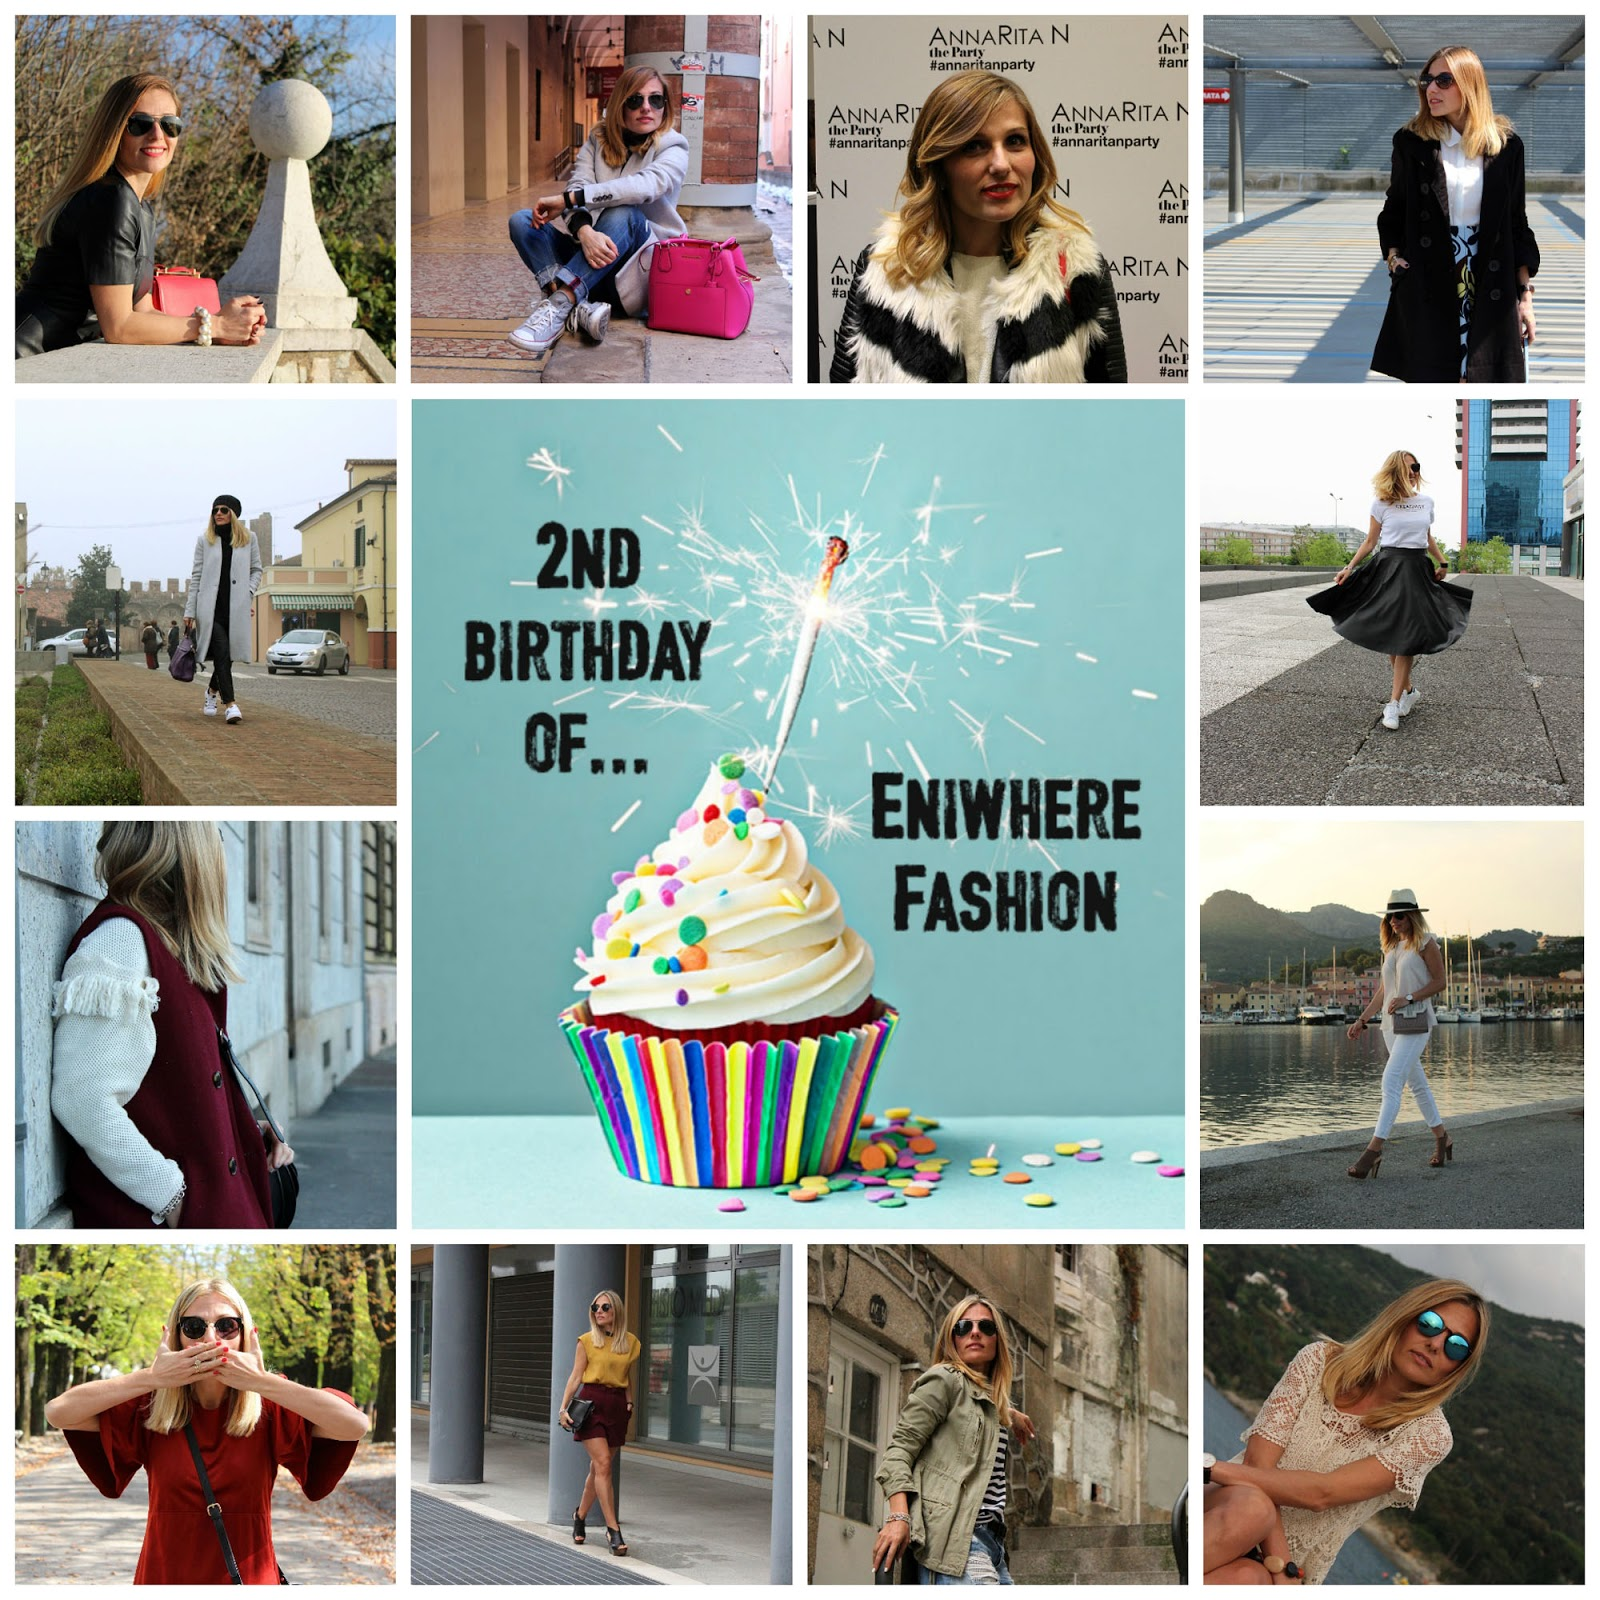 Eniwhere Fashion - Second blog's birthday